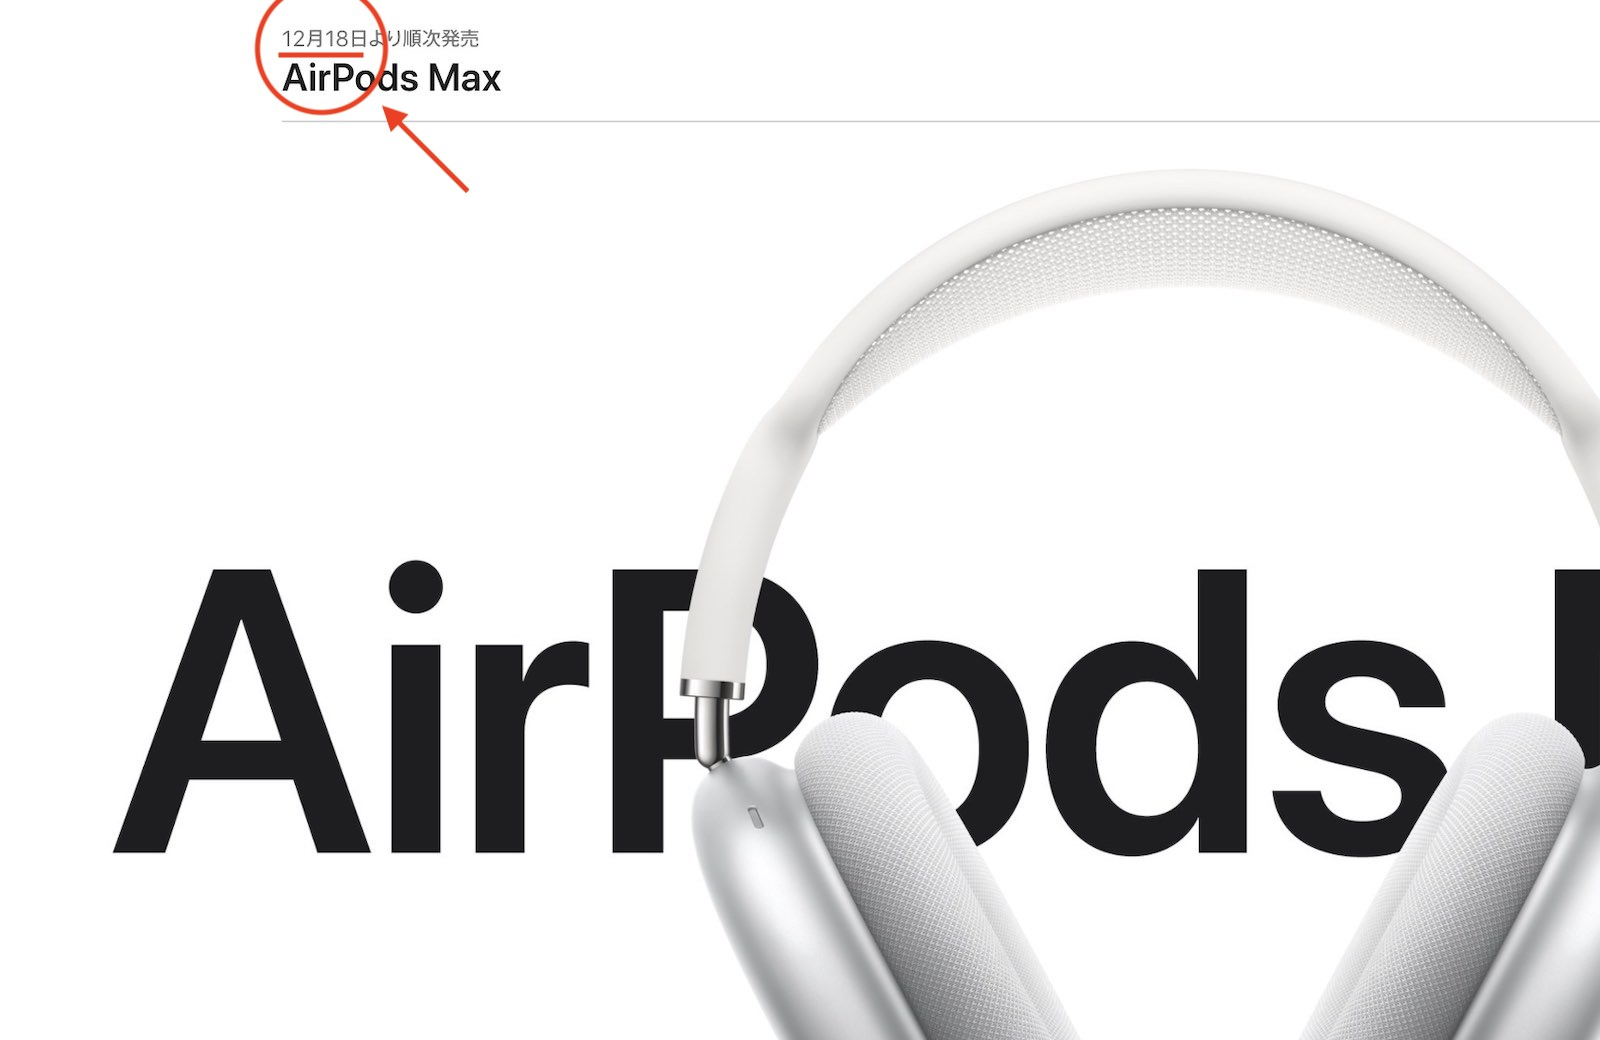 Airpods max on sale from 1218